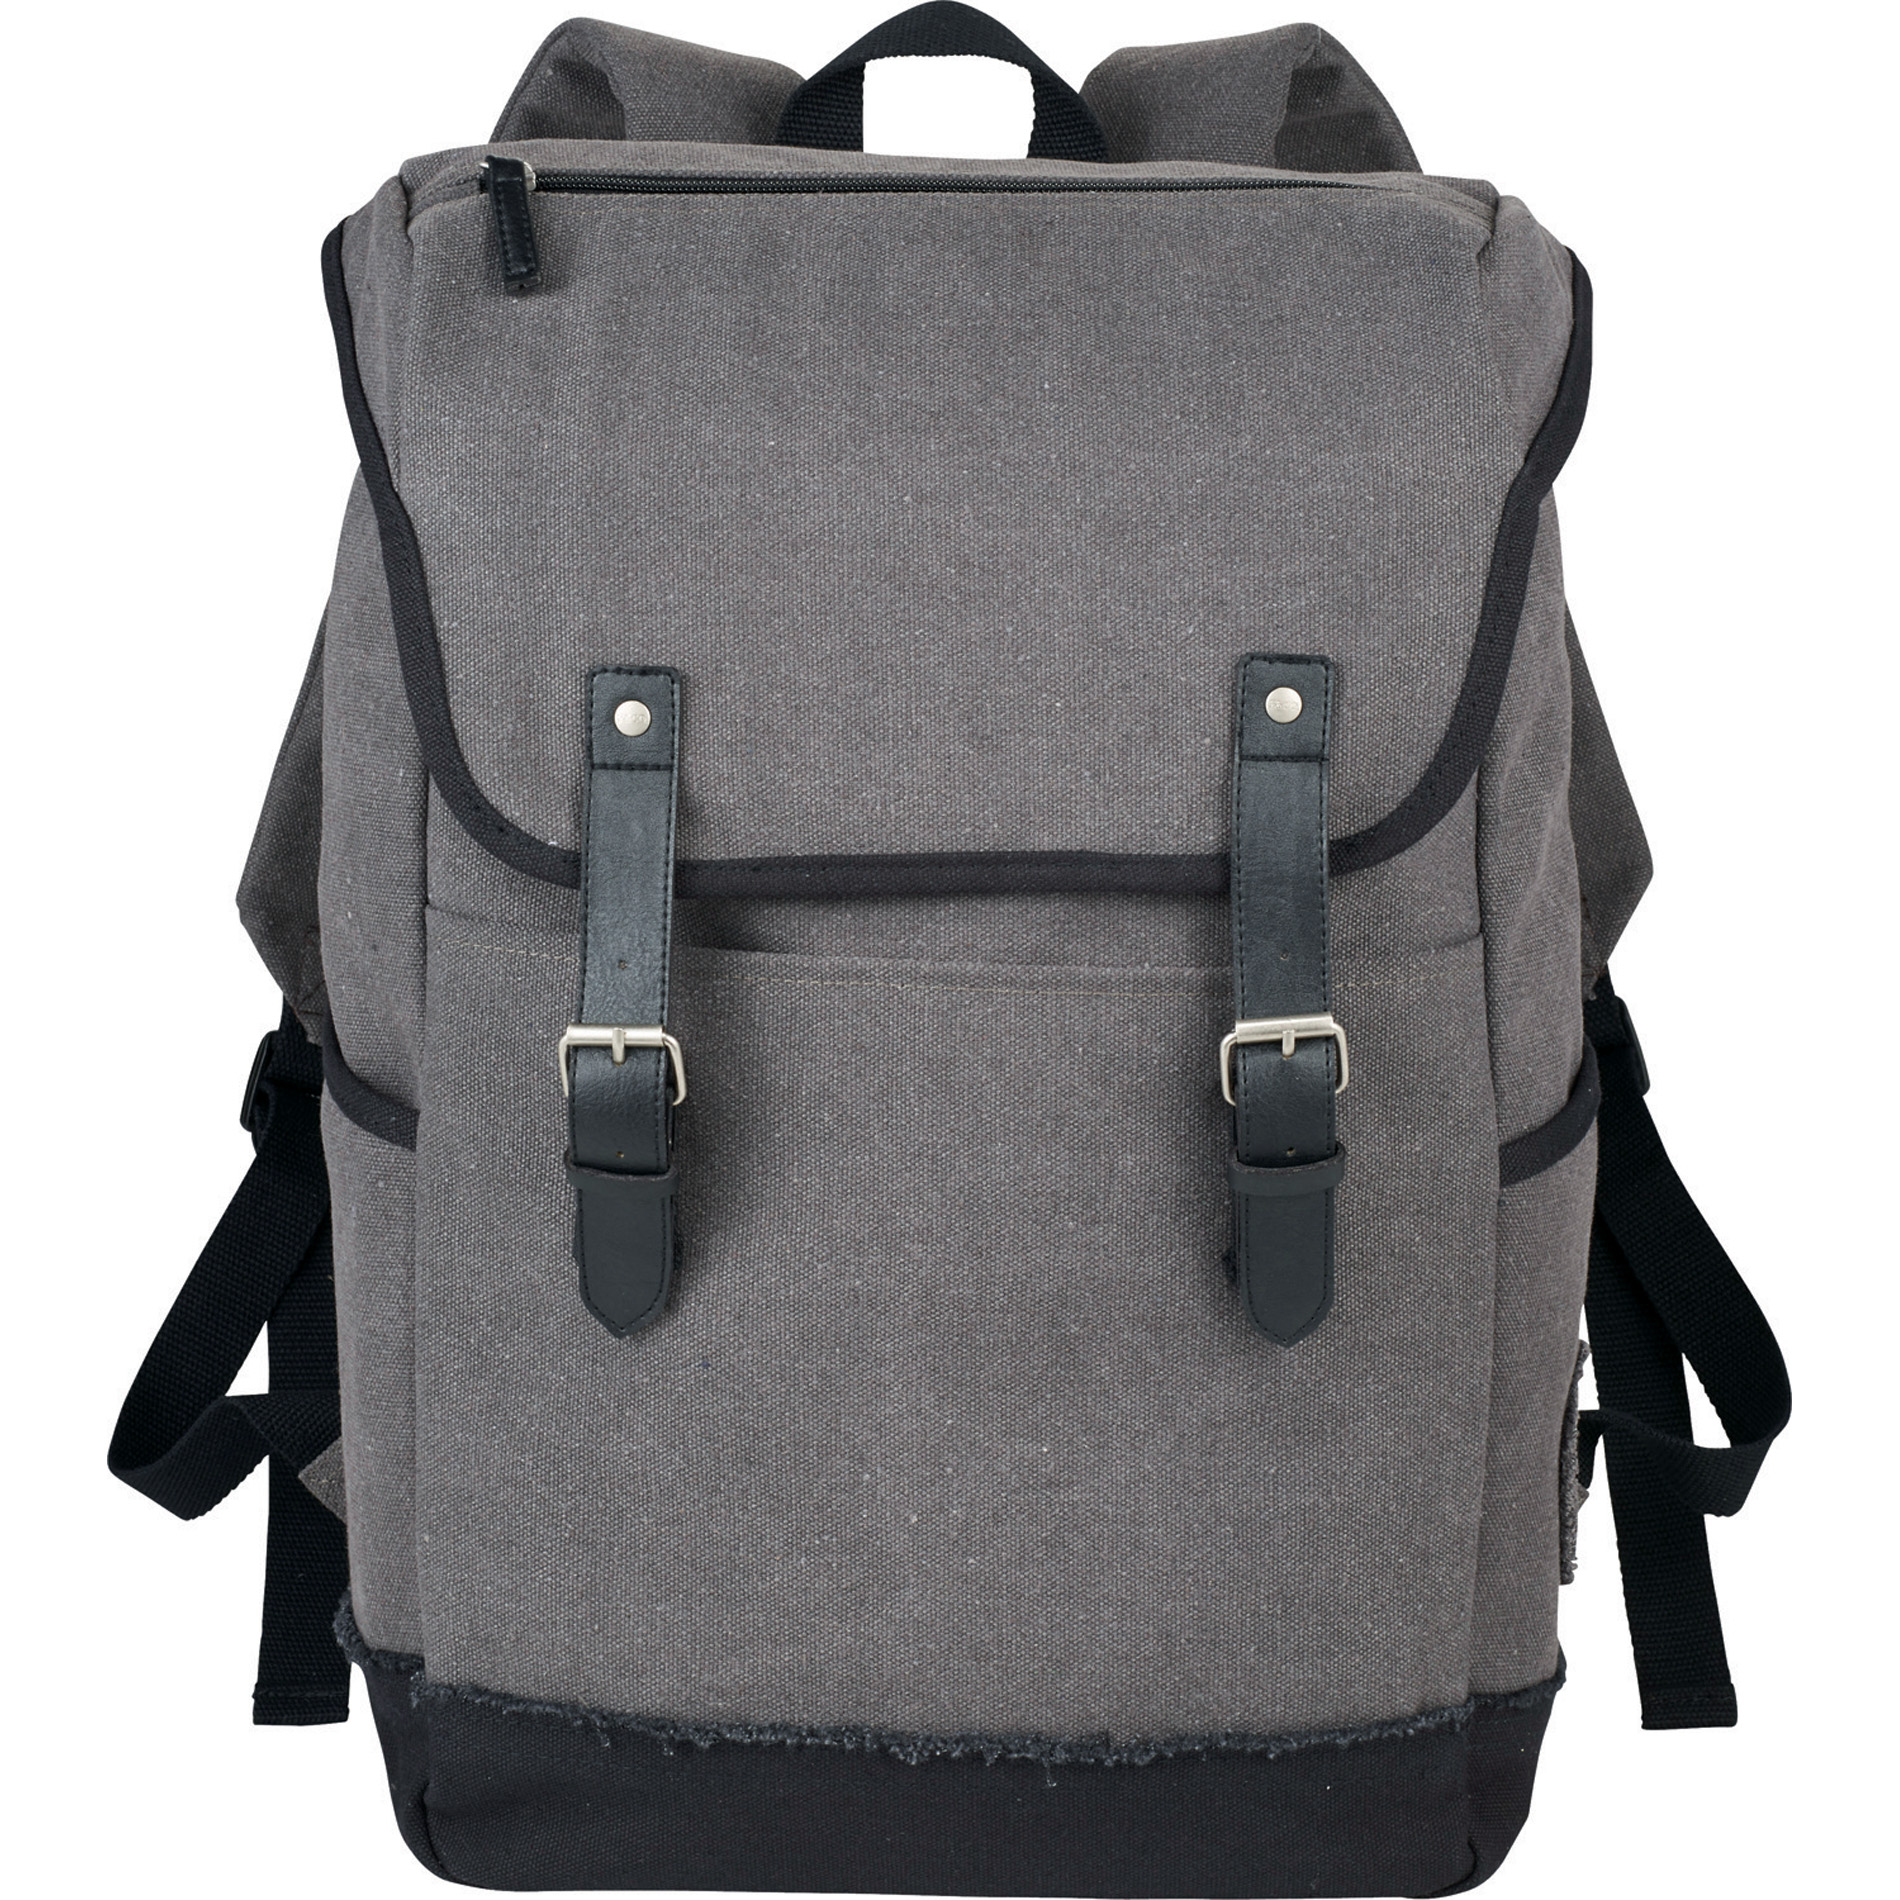 "Field & Co. 7950-94 - Hudson 15"" Computer Backpack"